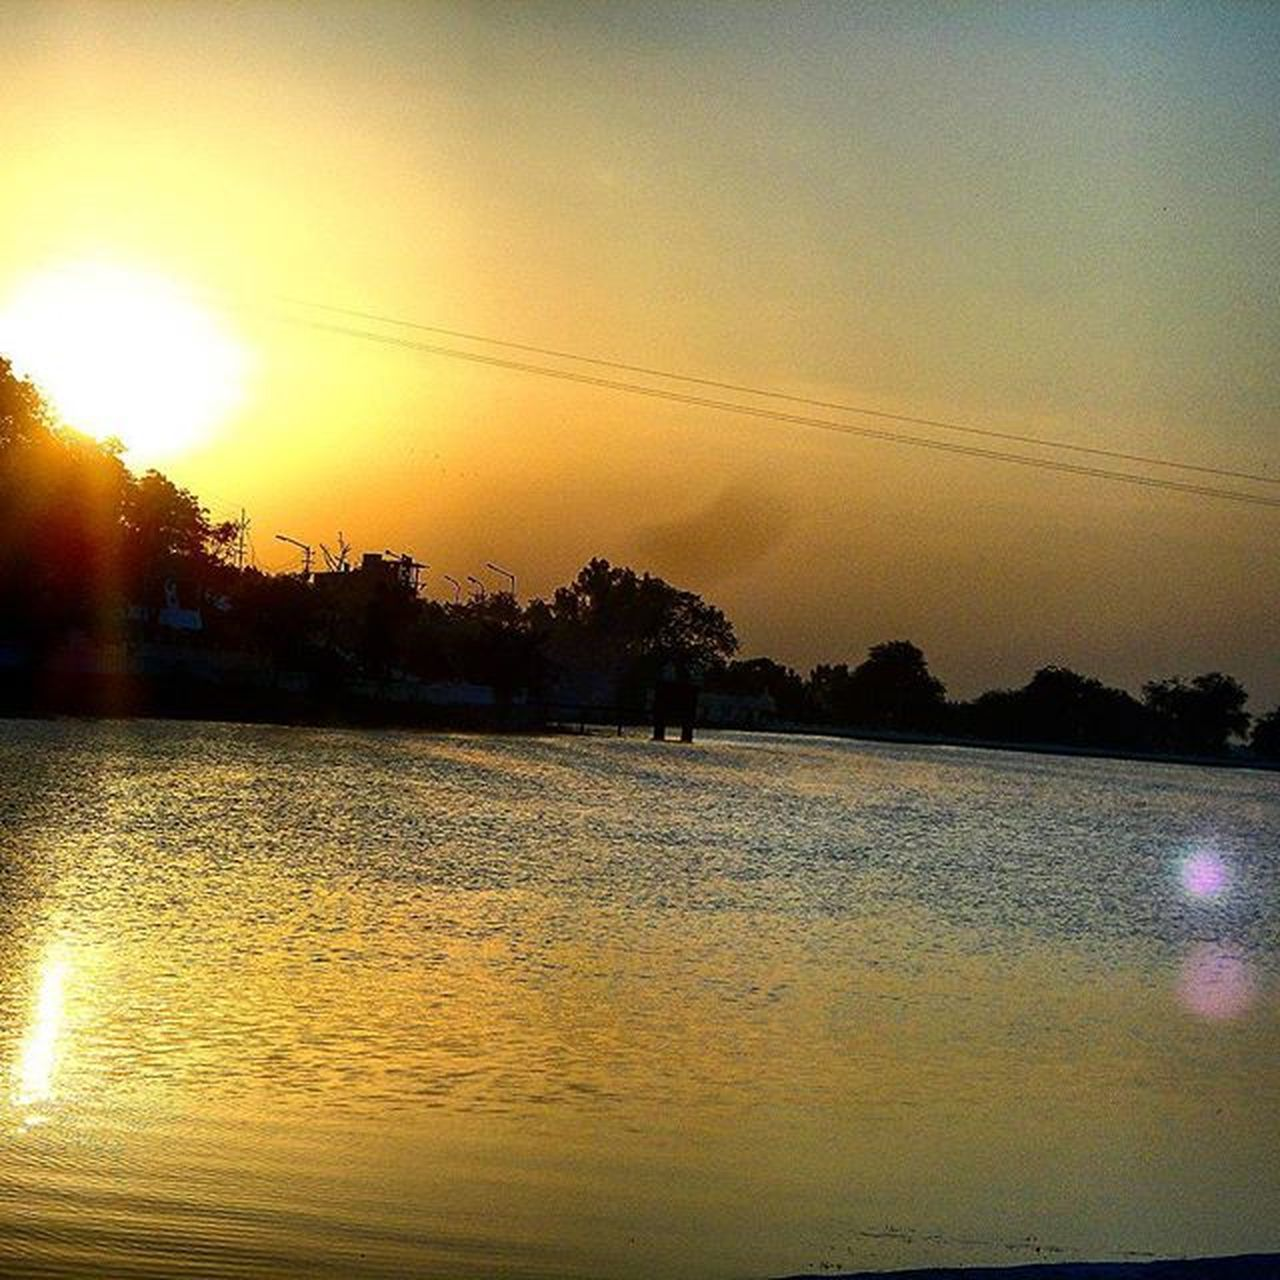 sunset, water, silhouette, nature, beauty in nature, reflection, scenics, tranquil scene, sun, sky, tranquility, outdoors, tree, vacations, no people, lake, day